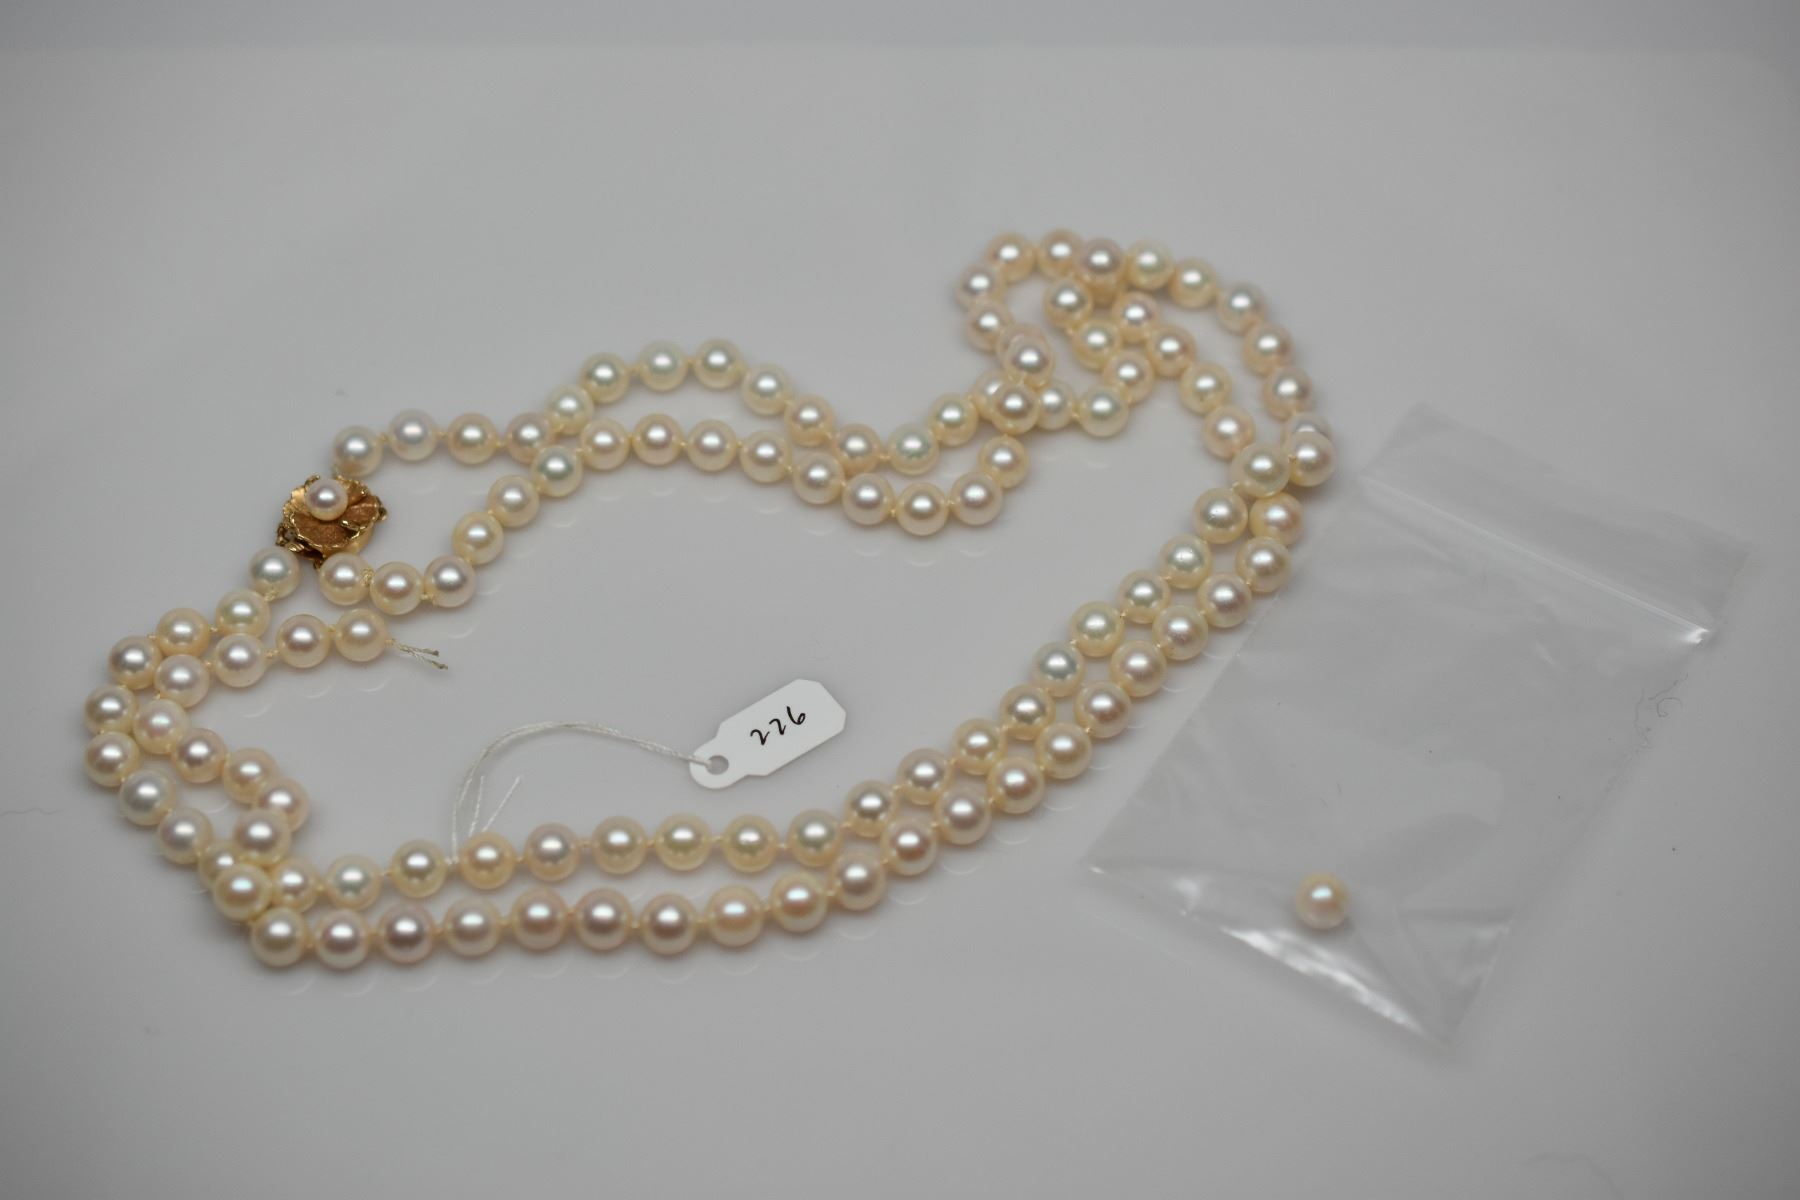 Video; Image 1 : Double Strand Pearl Necklace 18